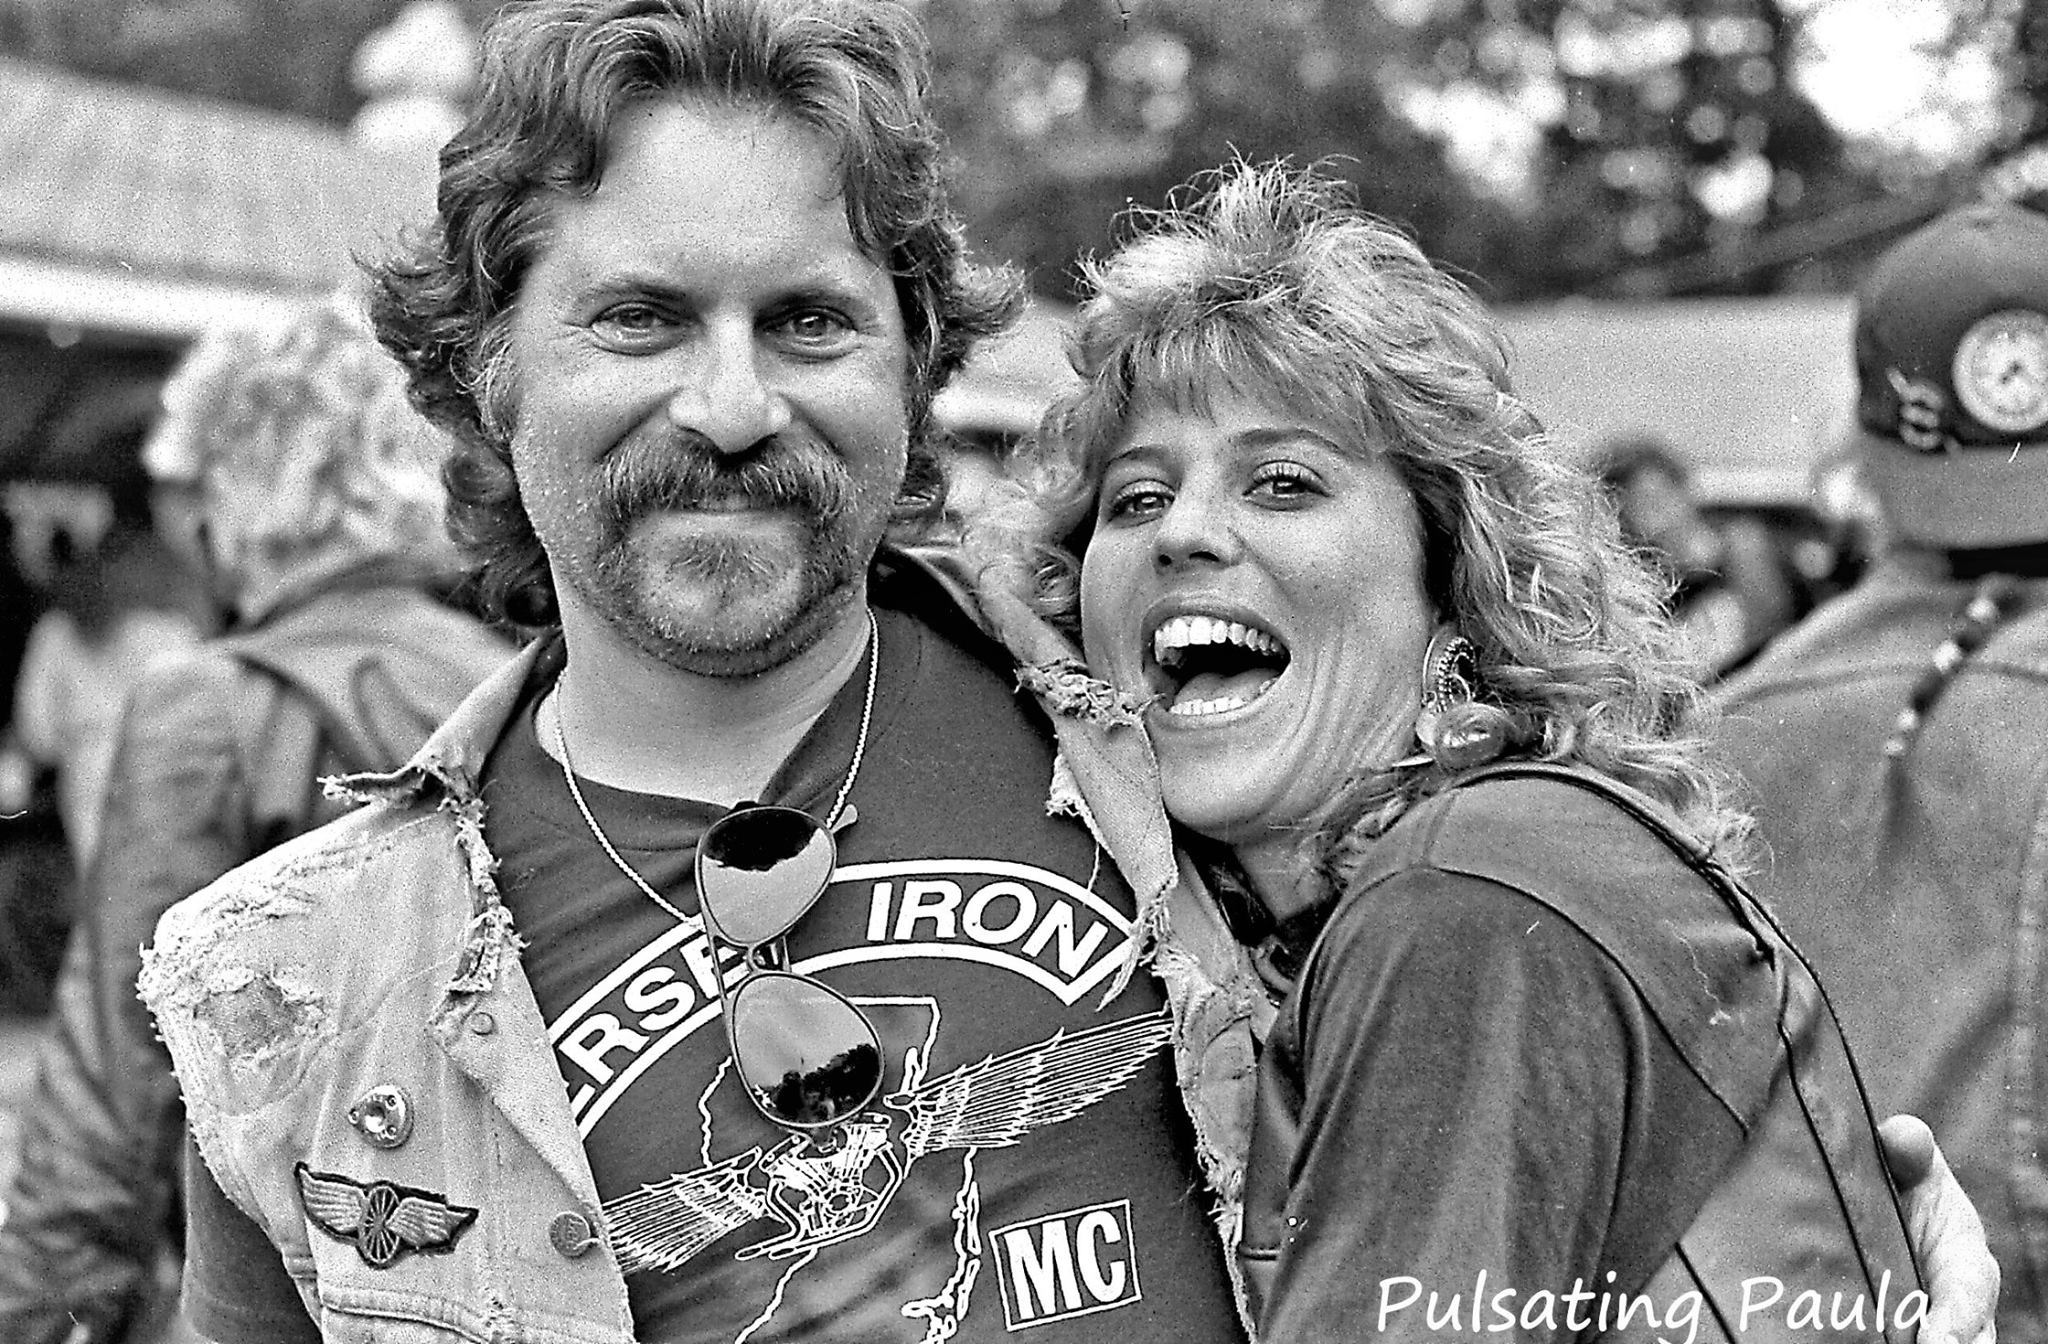 Pulsating Photos Of New Jersey Bikers In The 1980s and 1990s